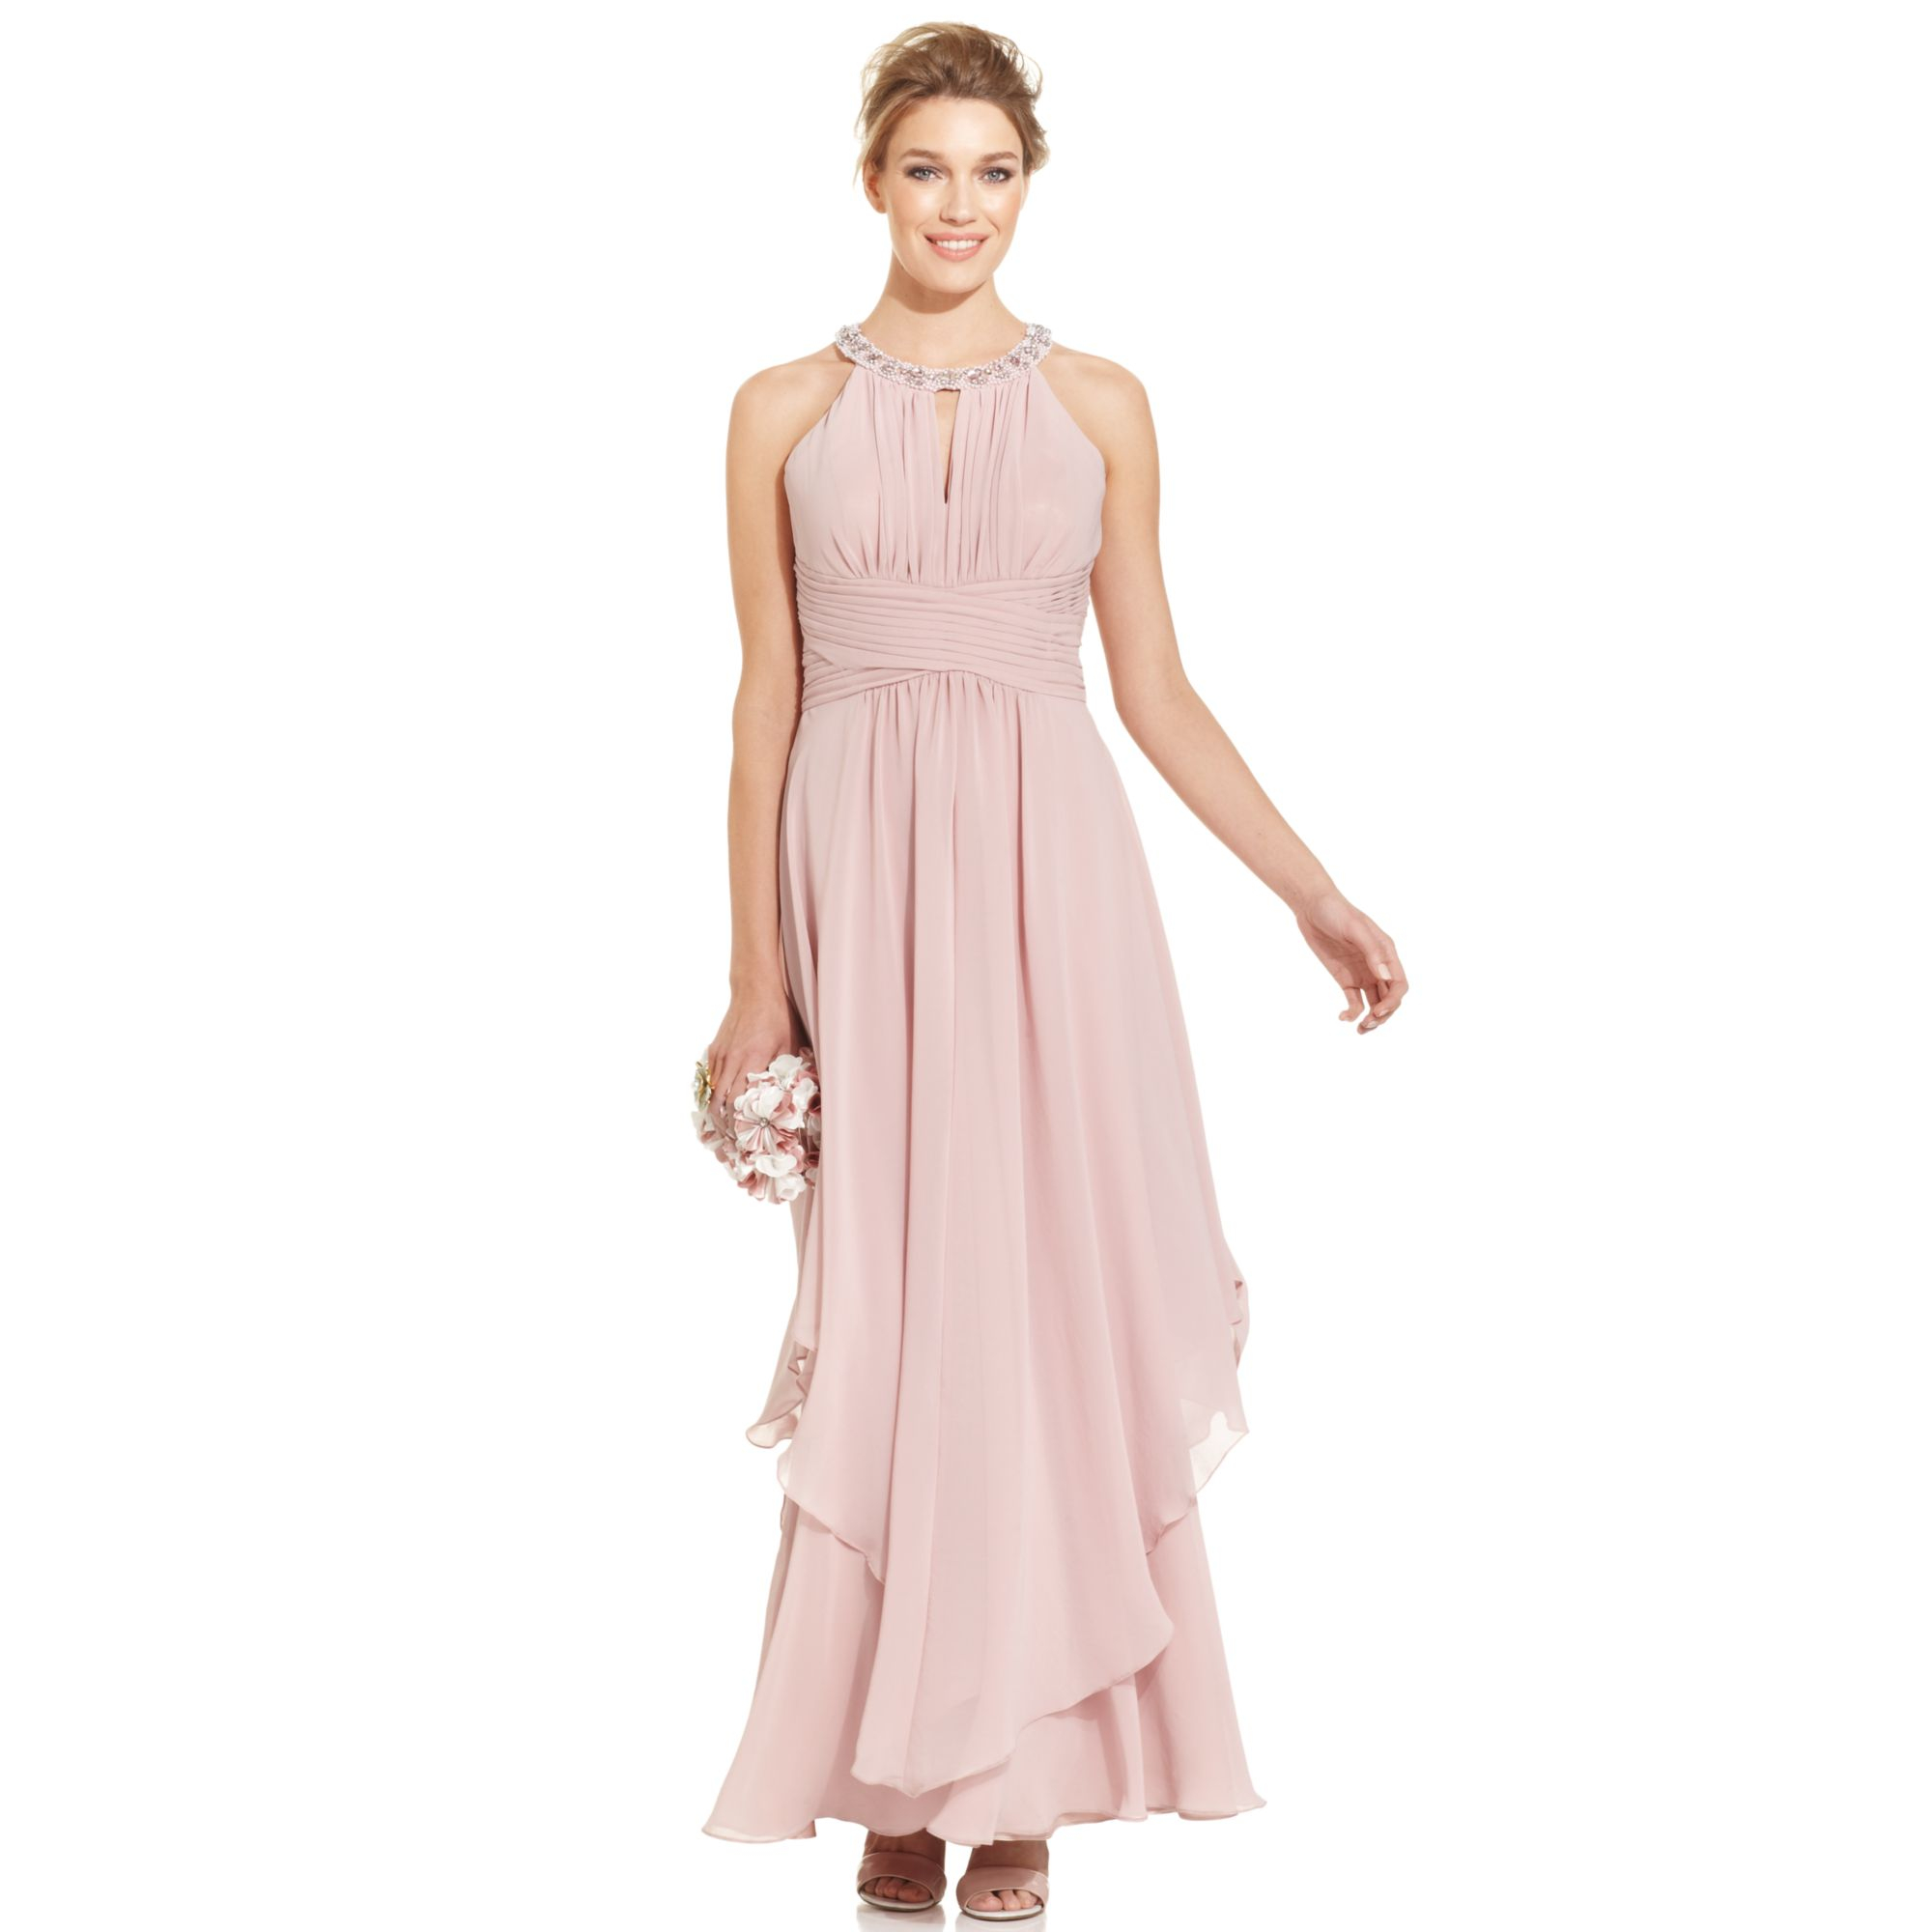 Lyst - Eliza J Sleeveless Jewelneck Halter Gown in Pink